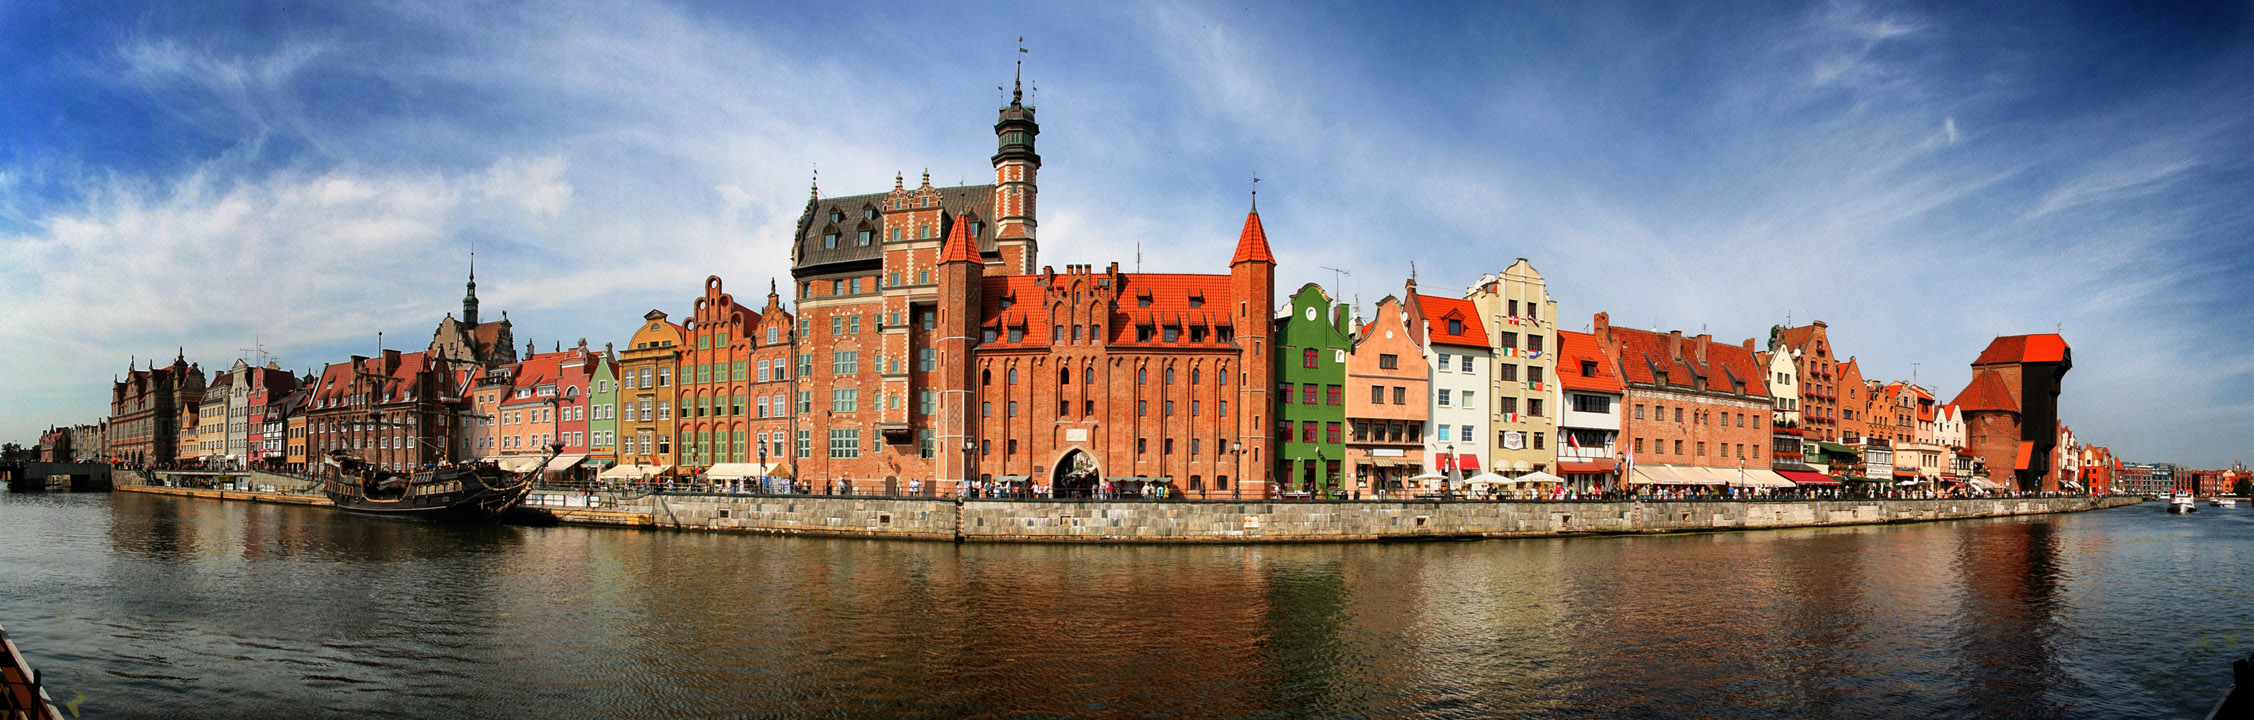 http://upload.wikimedia.org/wikipedia/commons/a/ab/2012-08-30_pano_gdansk_sm2.jpg